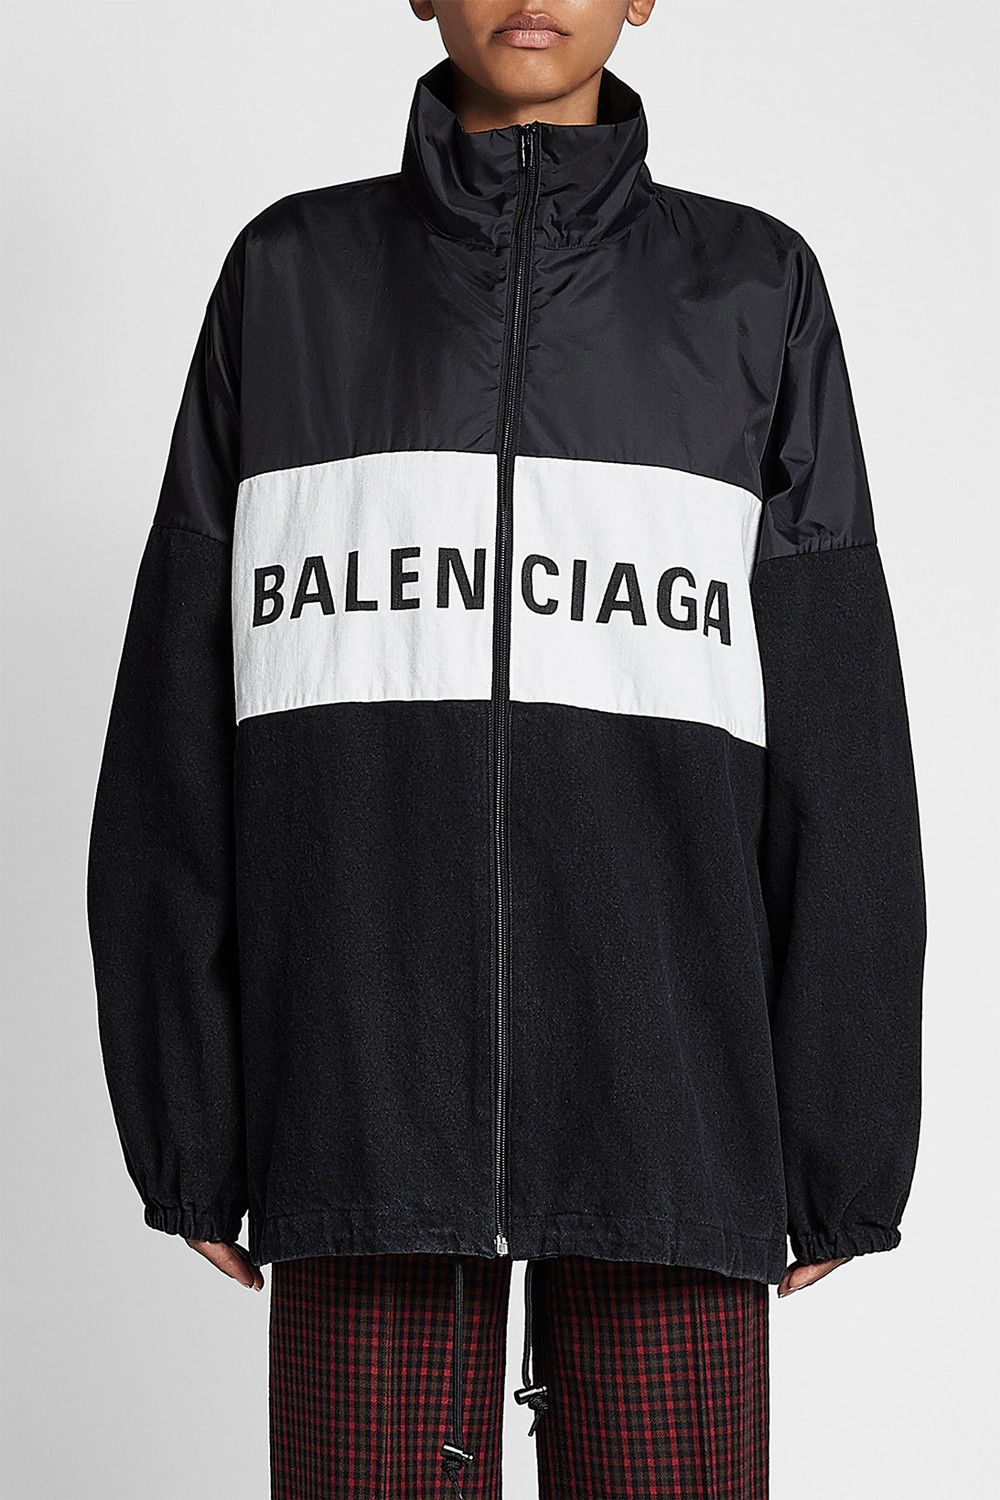 2b35617e3c4 Balenciaga s Logo Windbreaker Is the Only Jacket You ll Need This ...